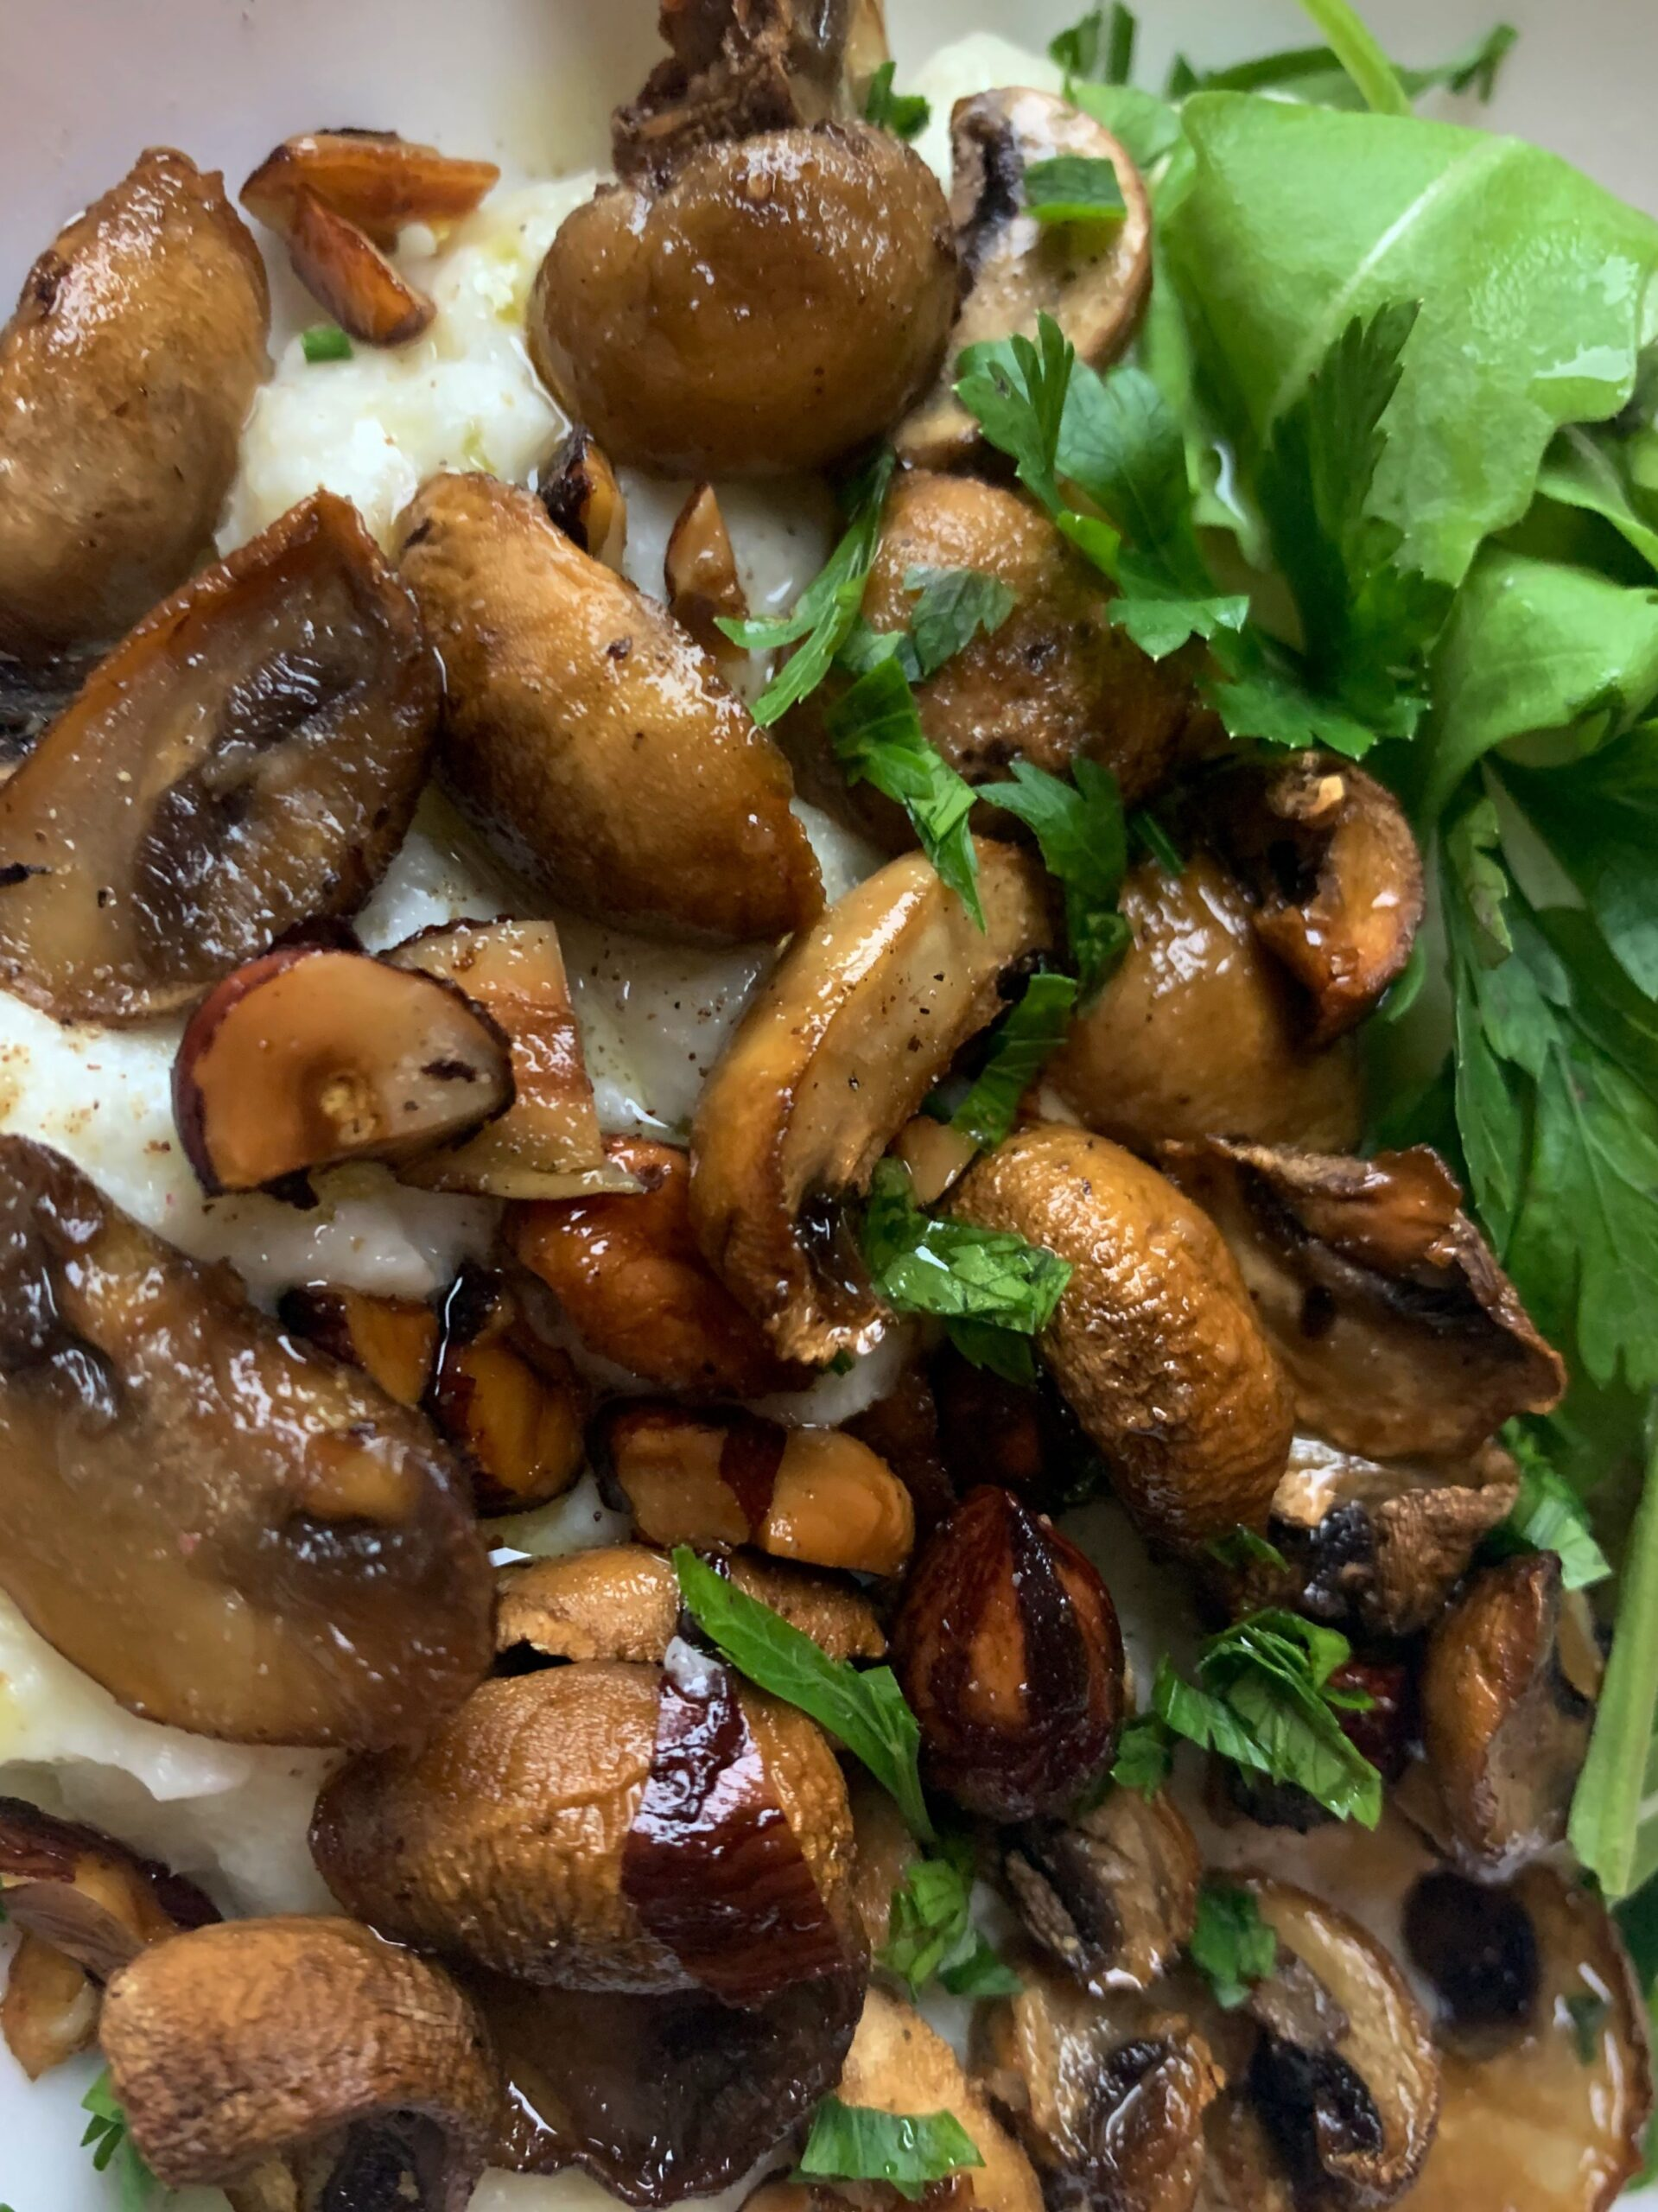 Picture of low carb mushrooms and roasted hazelnuts